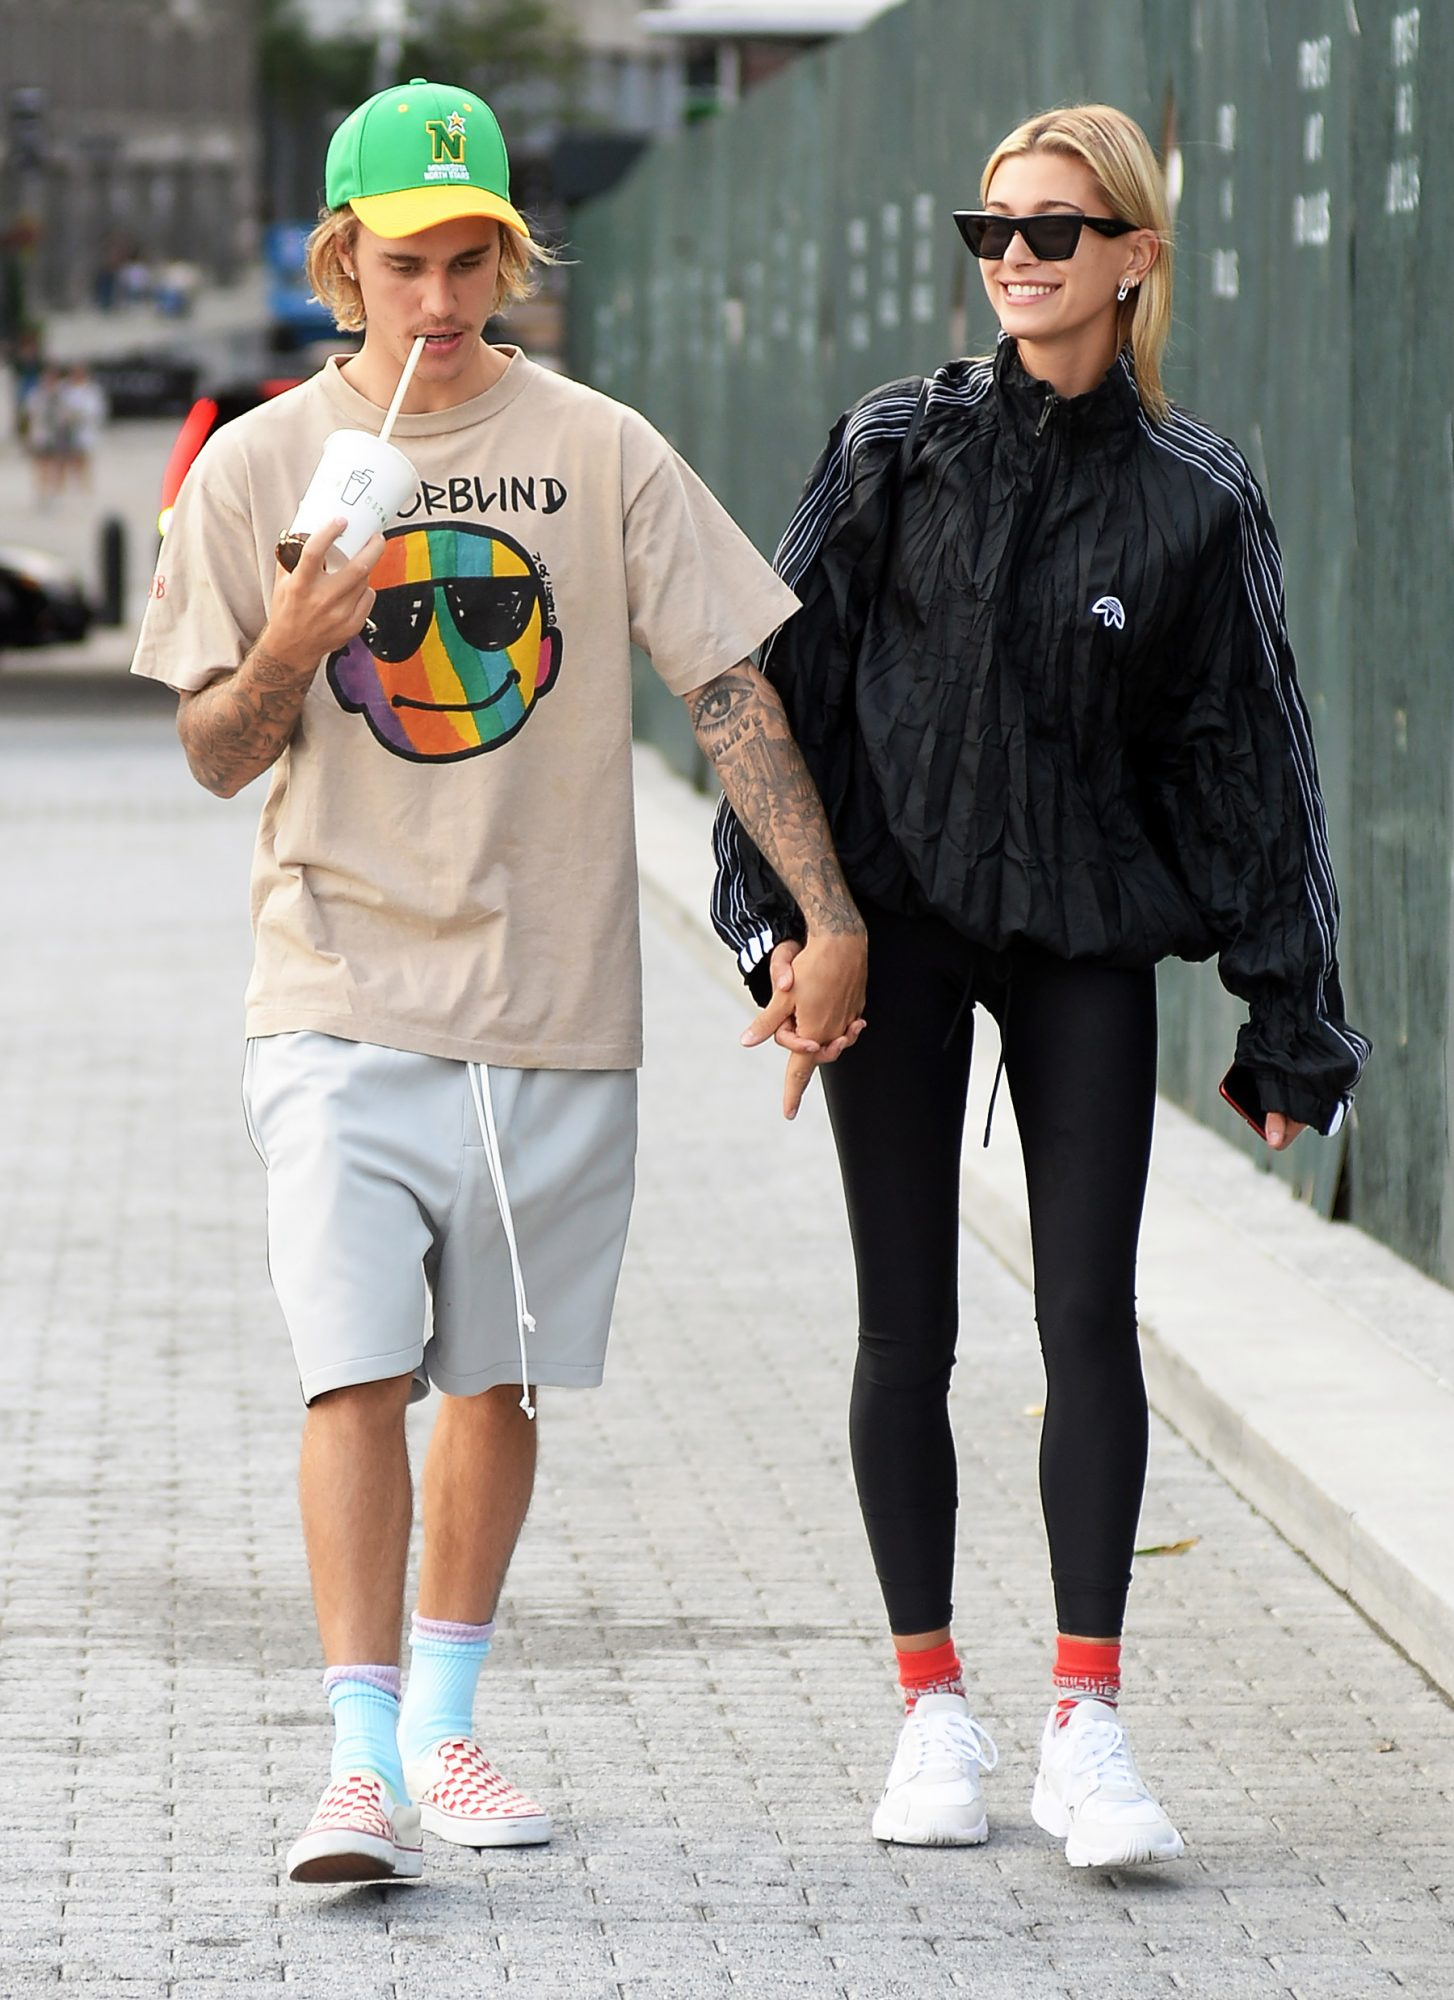 Justin Bieber takes his fiance Hailey Baldwin out for lunch and to see a movie today in New York City